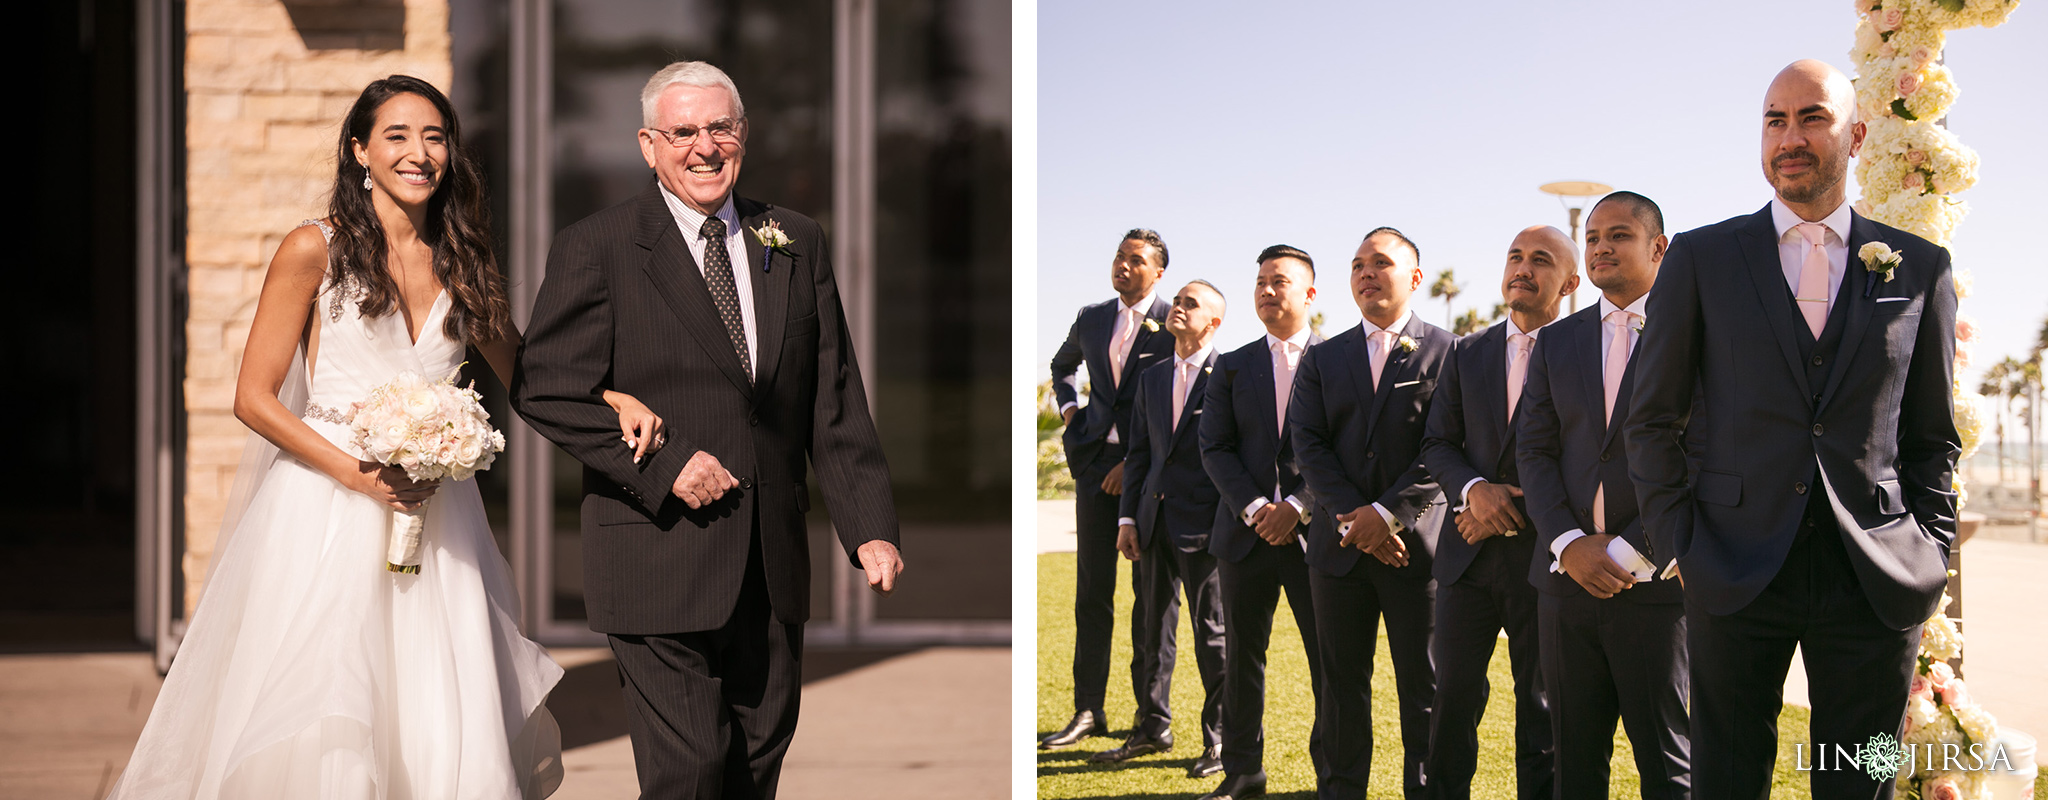 08 AR Pasea Huntington Beach Orange County Wedding Photography